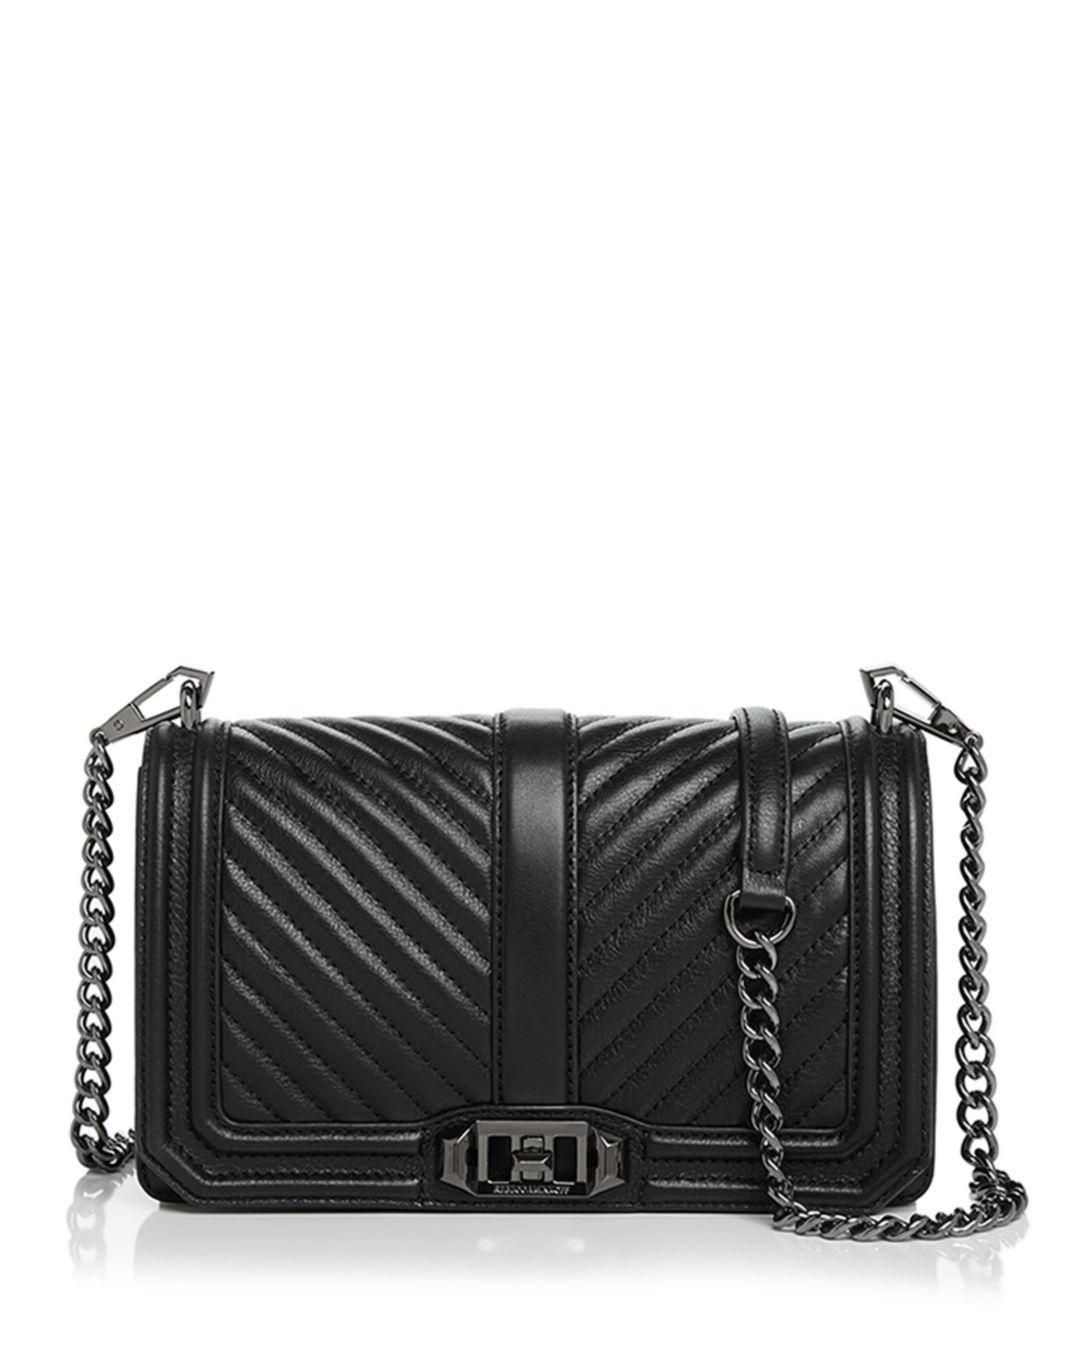 outlet boutique free delivery best cheap Love Chevron Quilt Small Leather Crossbody | Chanel handbags ...